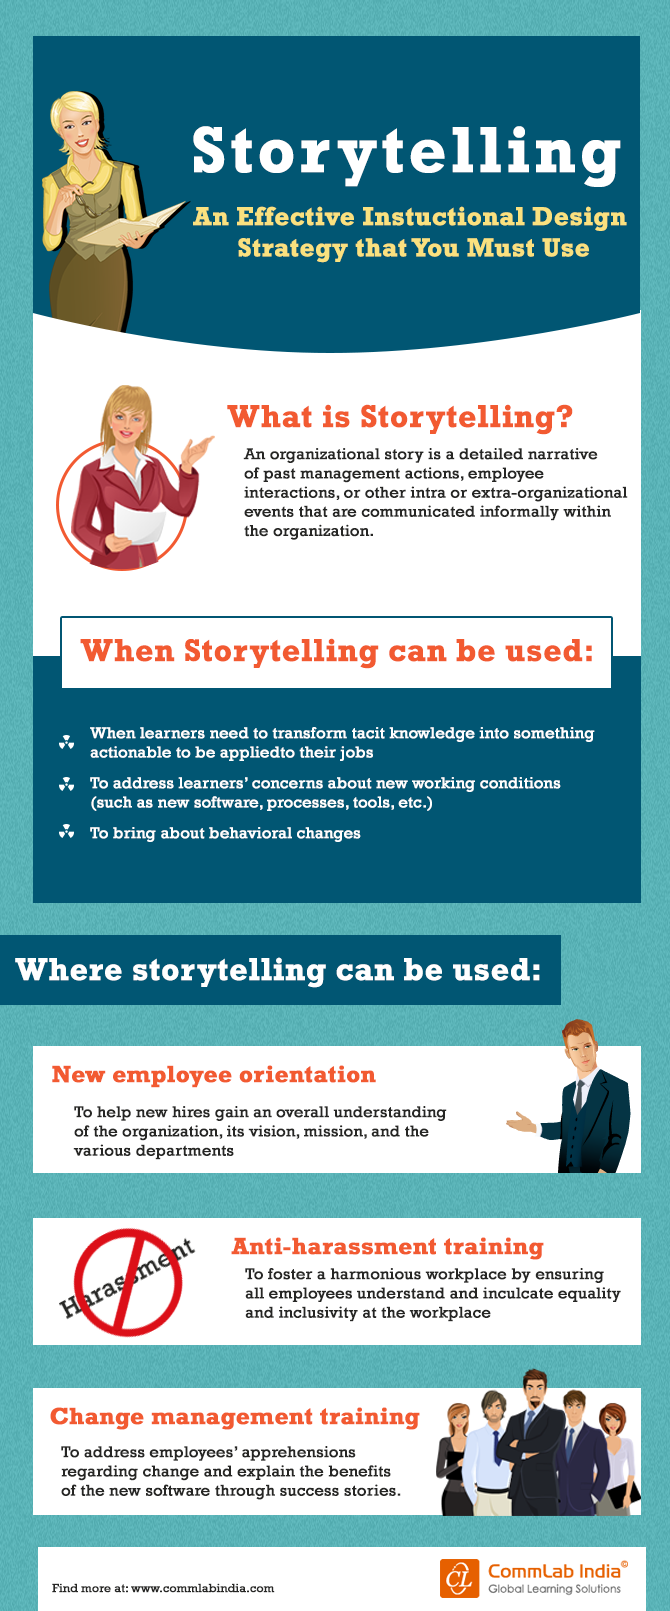 Storytelling - An Effective Instructional Design Strategy You Must Use [Infographic]